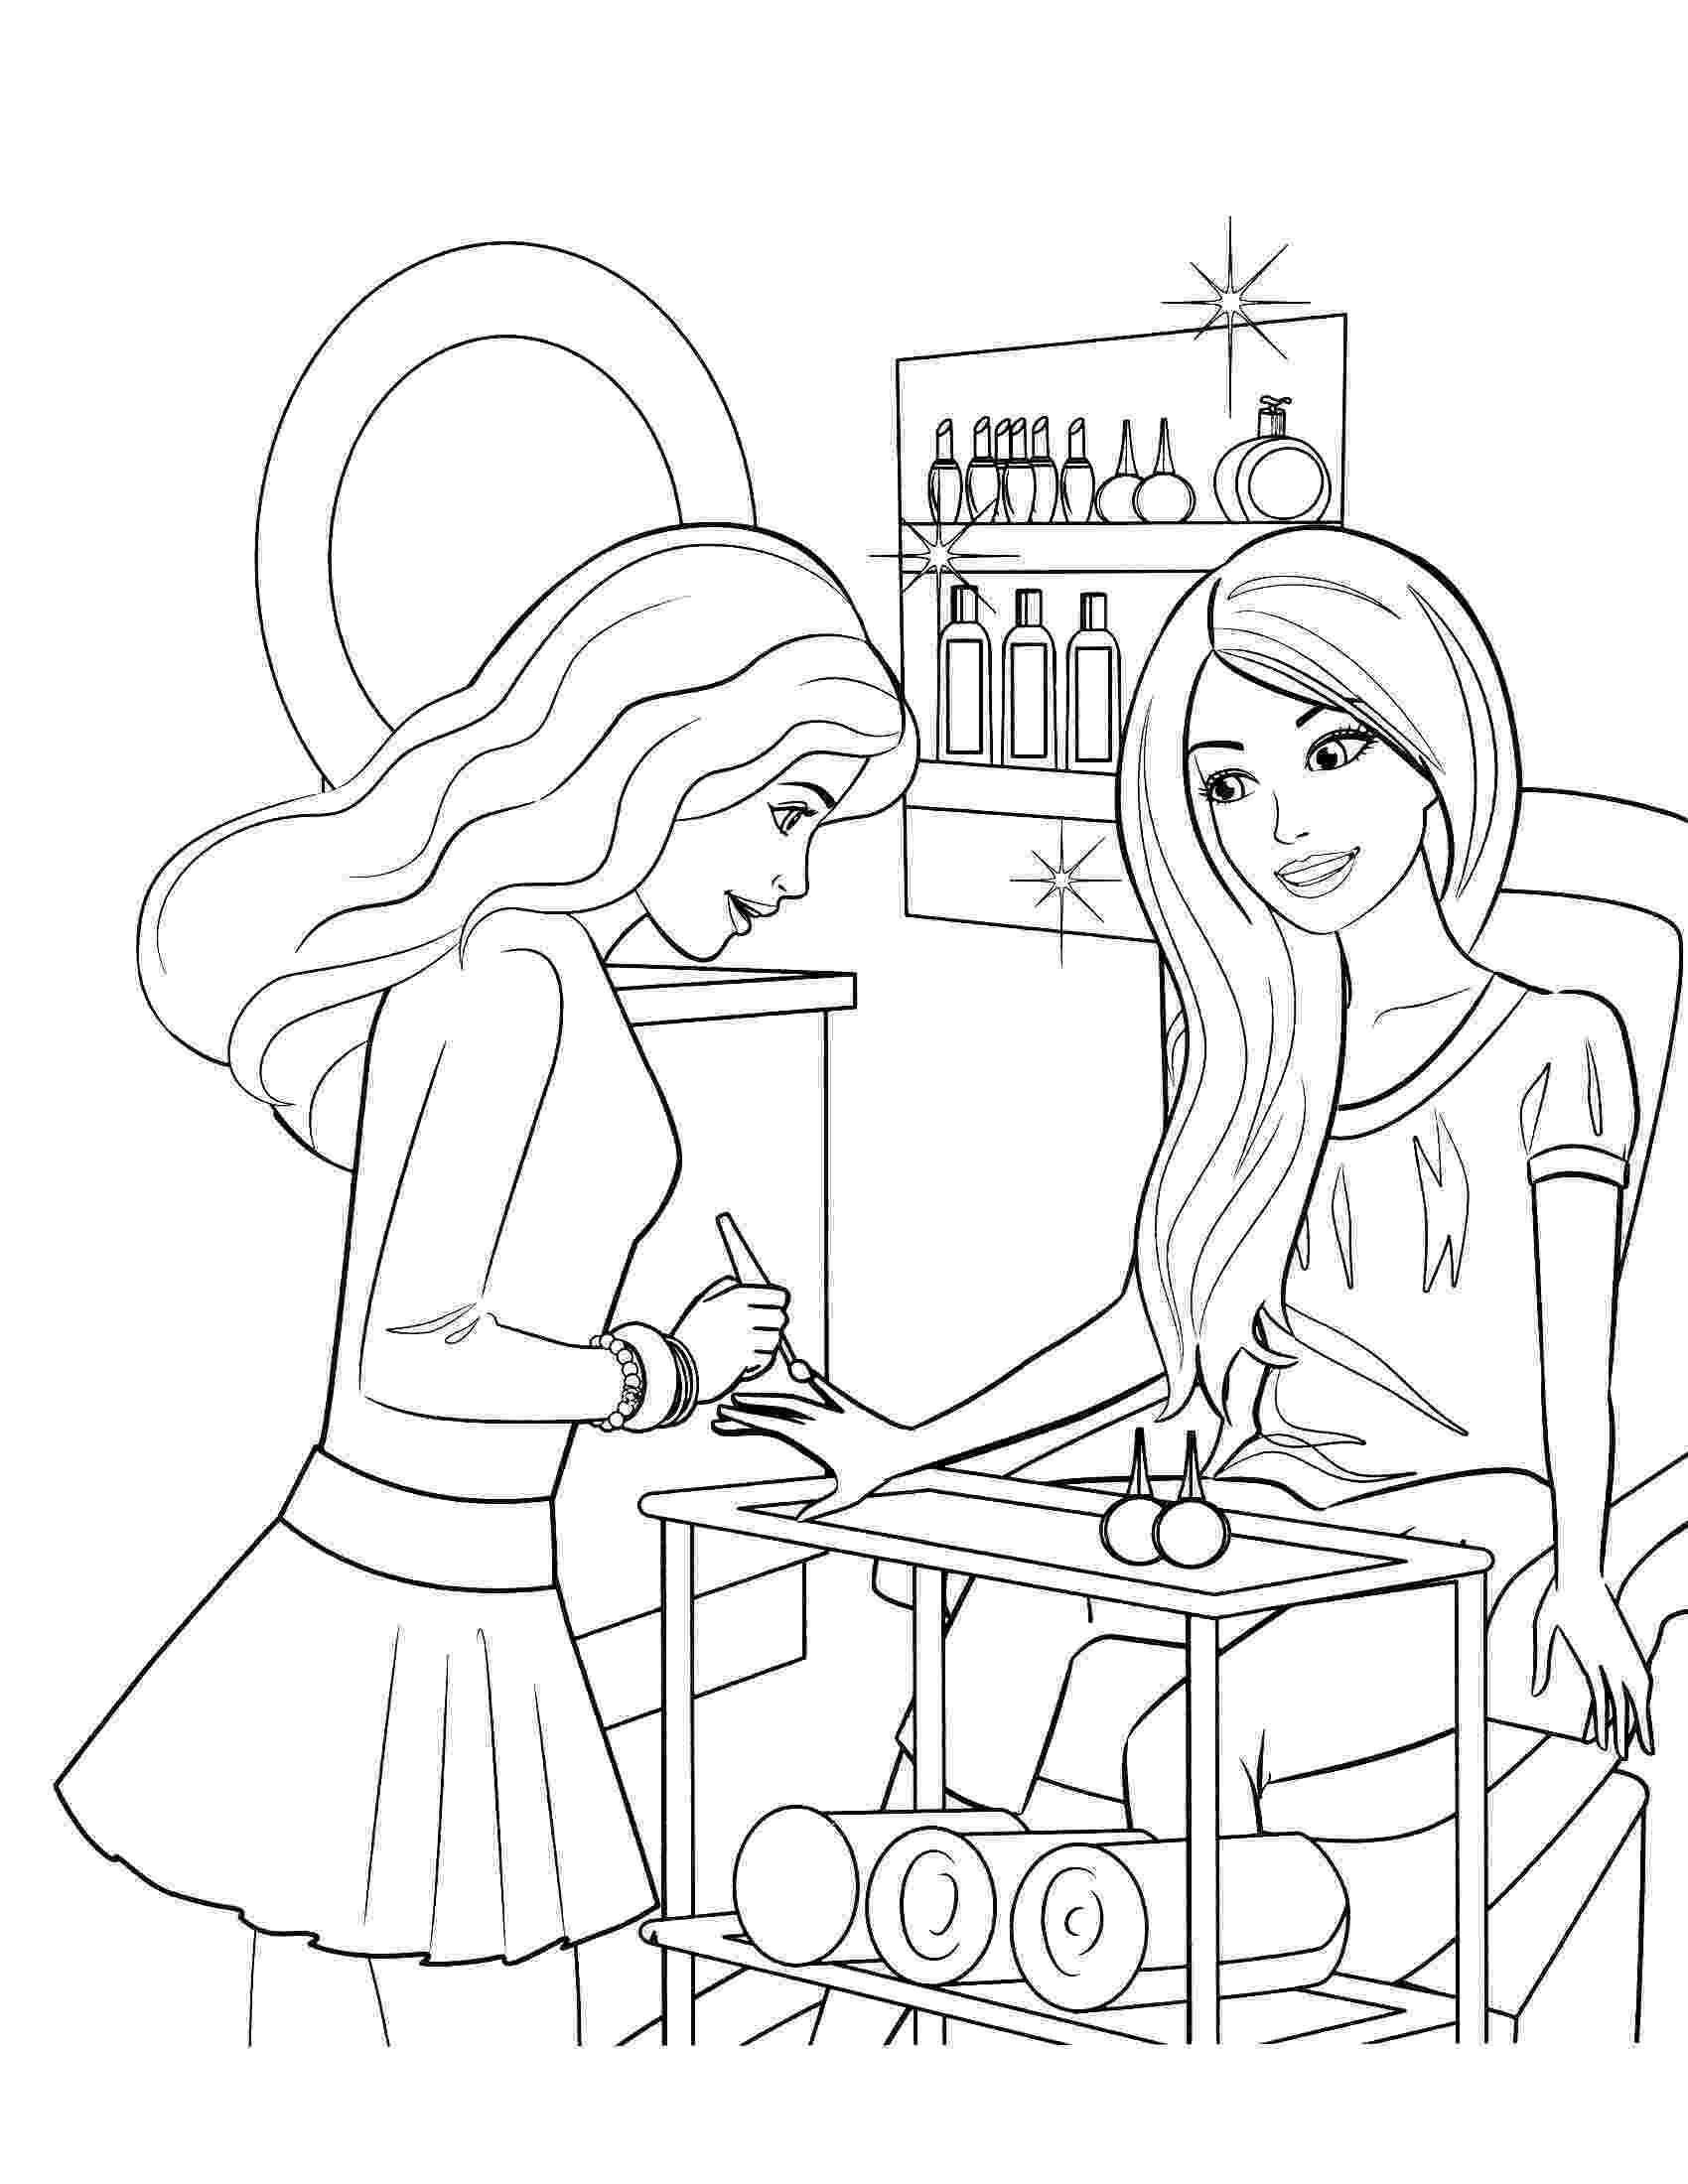 free printable coloring pages barbie get this free printable barbie coloring pages for kids 5gzkd free barbie printable pages coloring